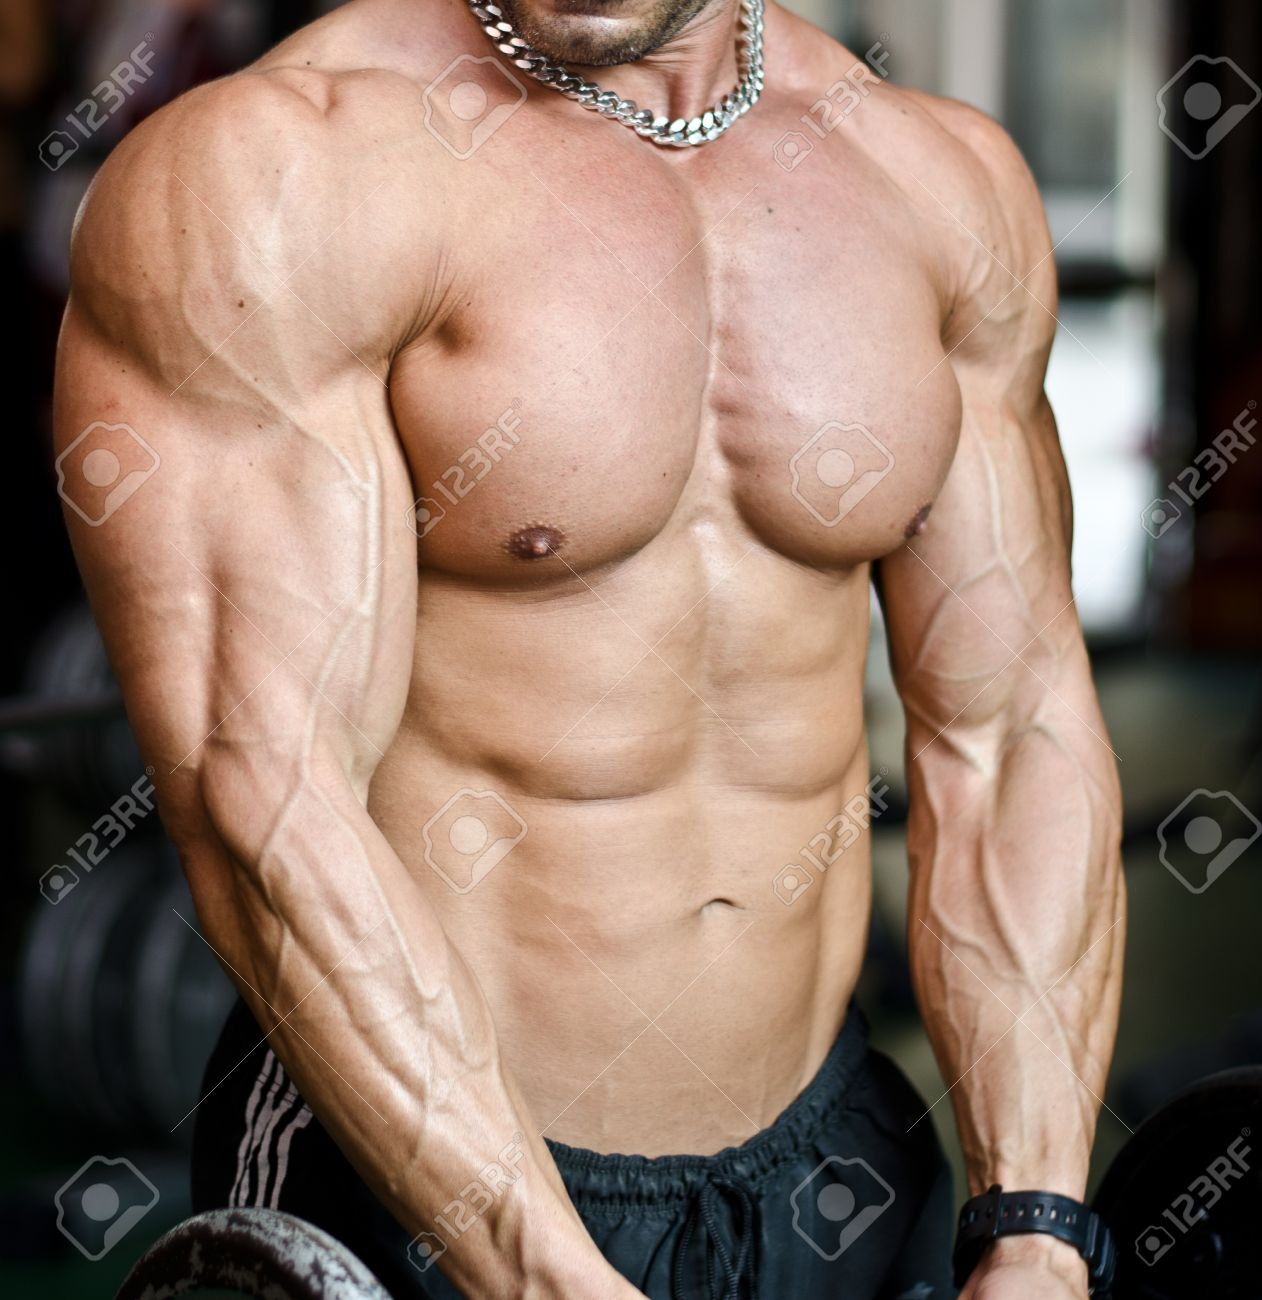 Muscular Torso Pecs Abs And Arms Of Male Bodybuilder In Gym Stock